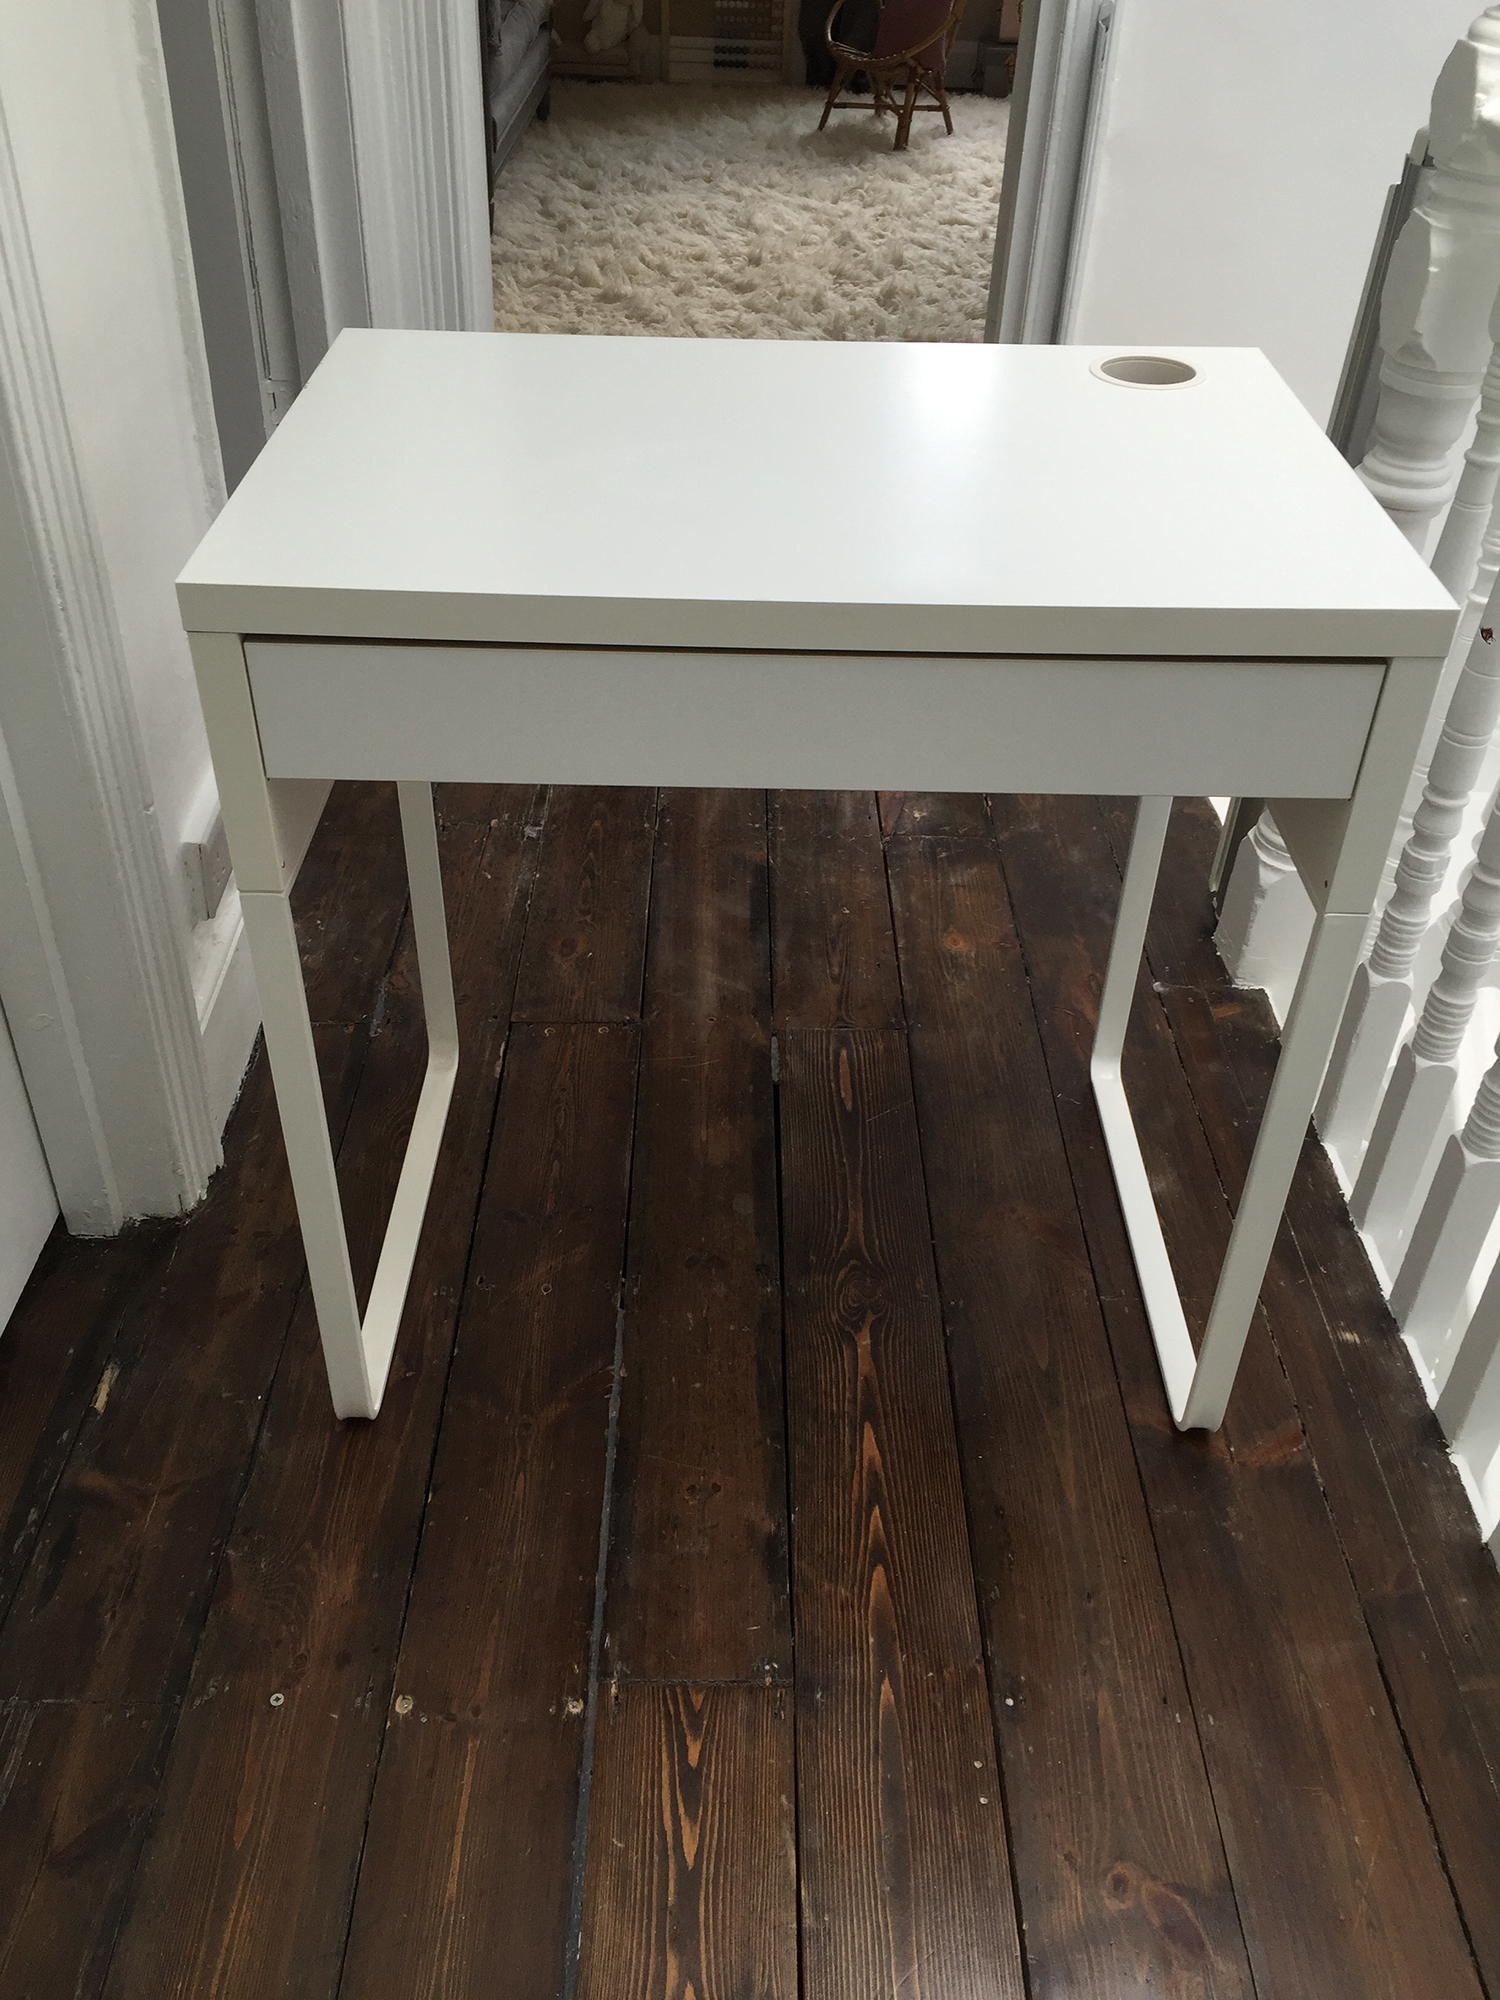 Preciously Me blog : One Room Challenge - Ikea Micke